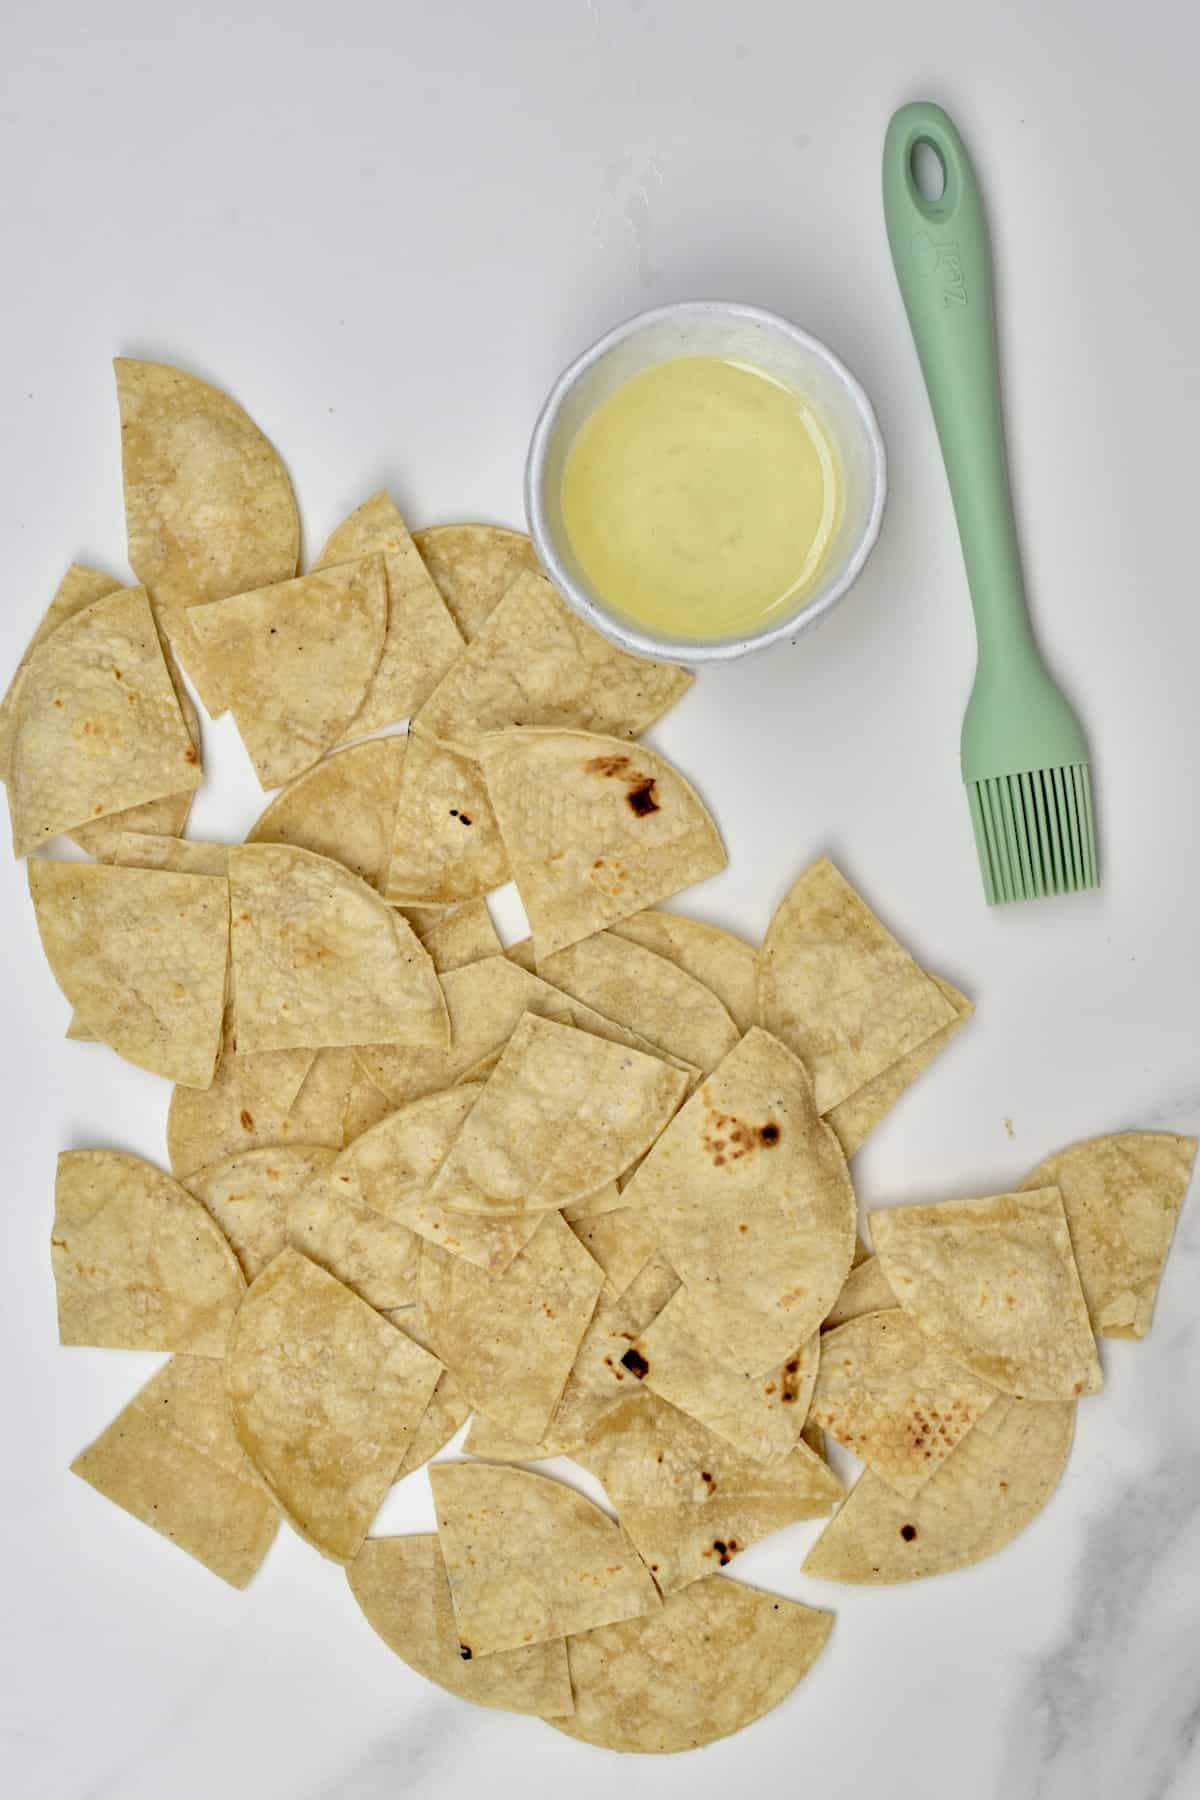 Corn tortilla chips and olive oil